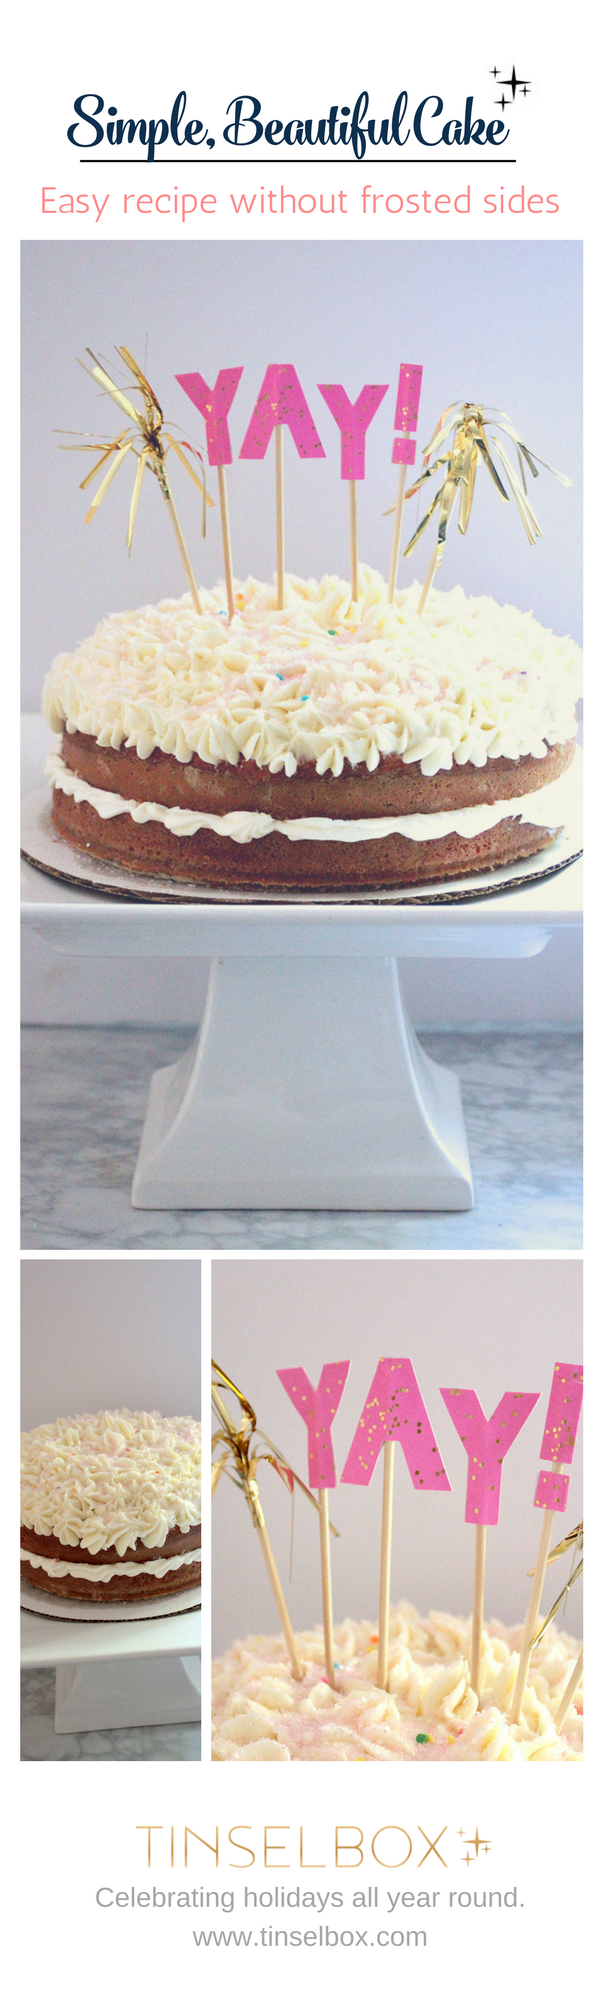 Beautiful, simple cake without frosted sides. Also, a no-fail buttercream frosting recipe.